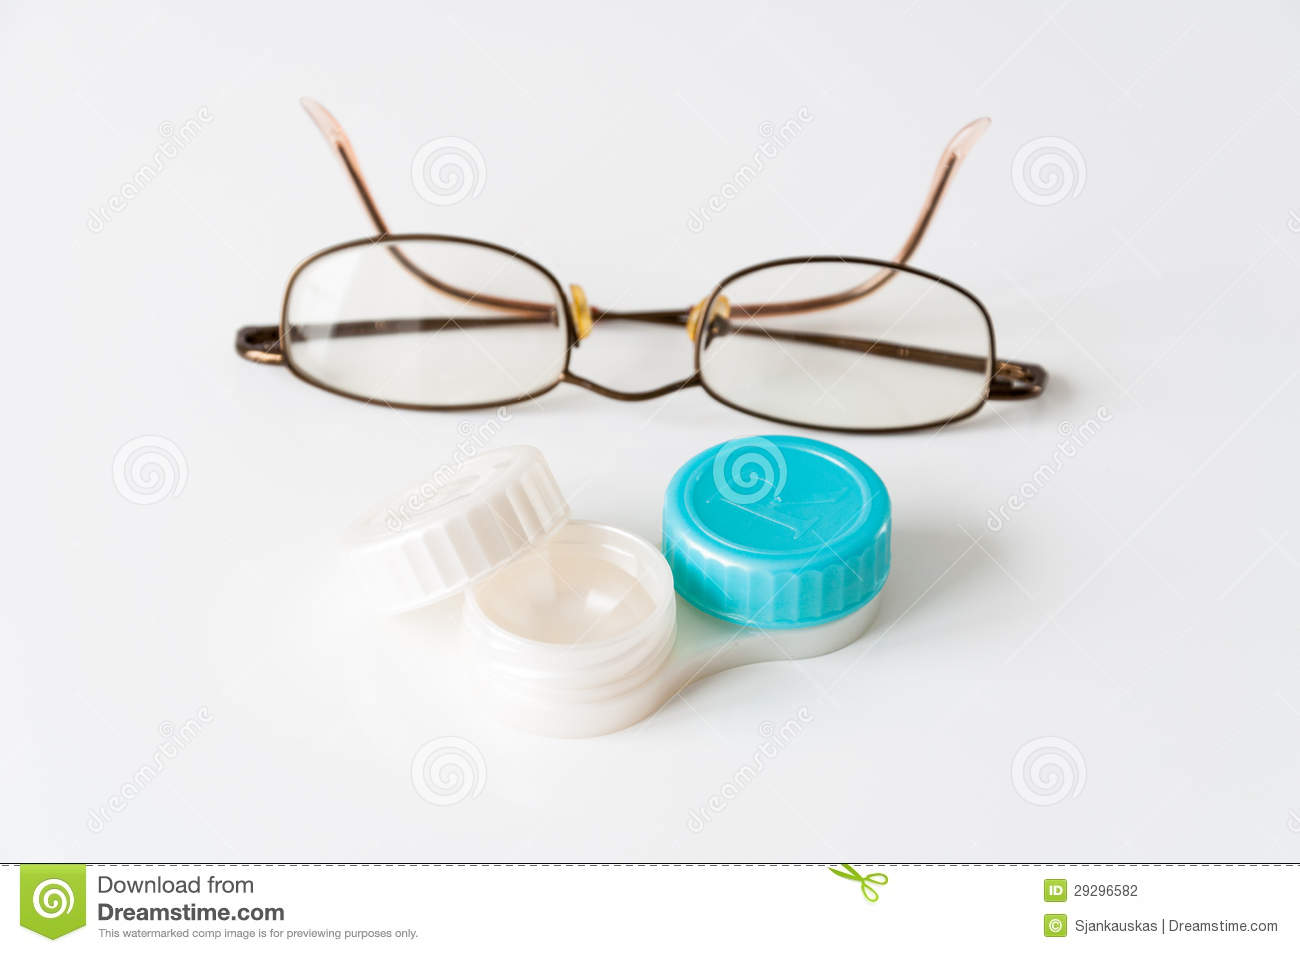 Contacts and Glasses: It's a Tough Choice